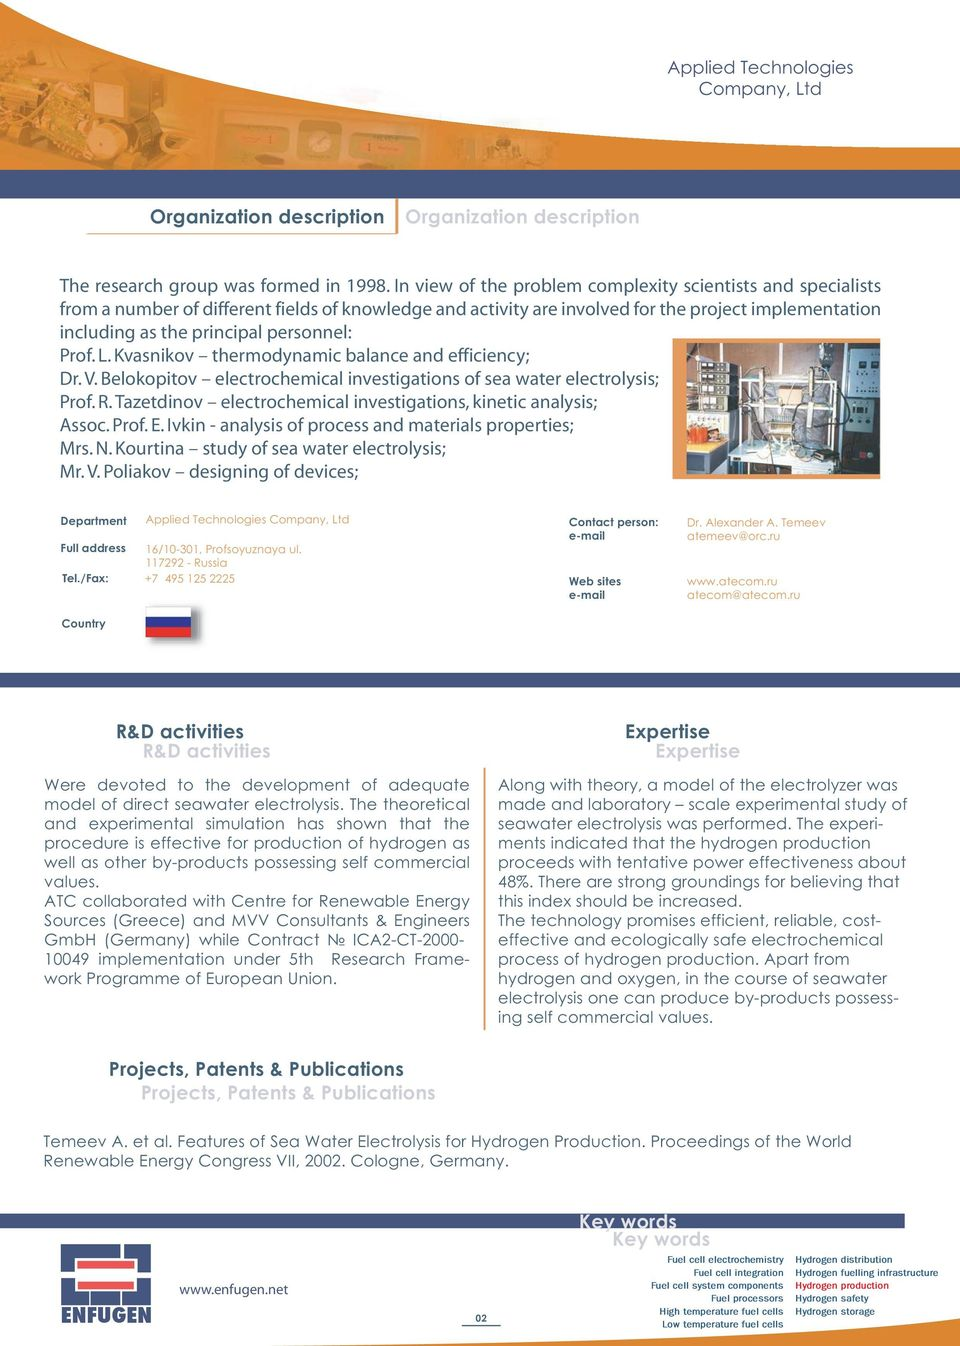 personnel: Prof. L. Kvasnikov thermodynamic balance and efficiency; Dr. V. Belokopitov electrochemical investigations of sea water electrolysis; Prof. R.